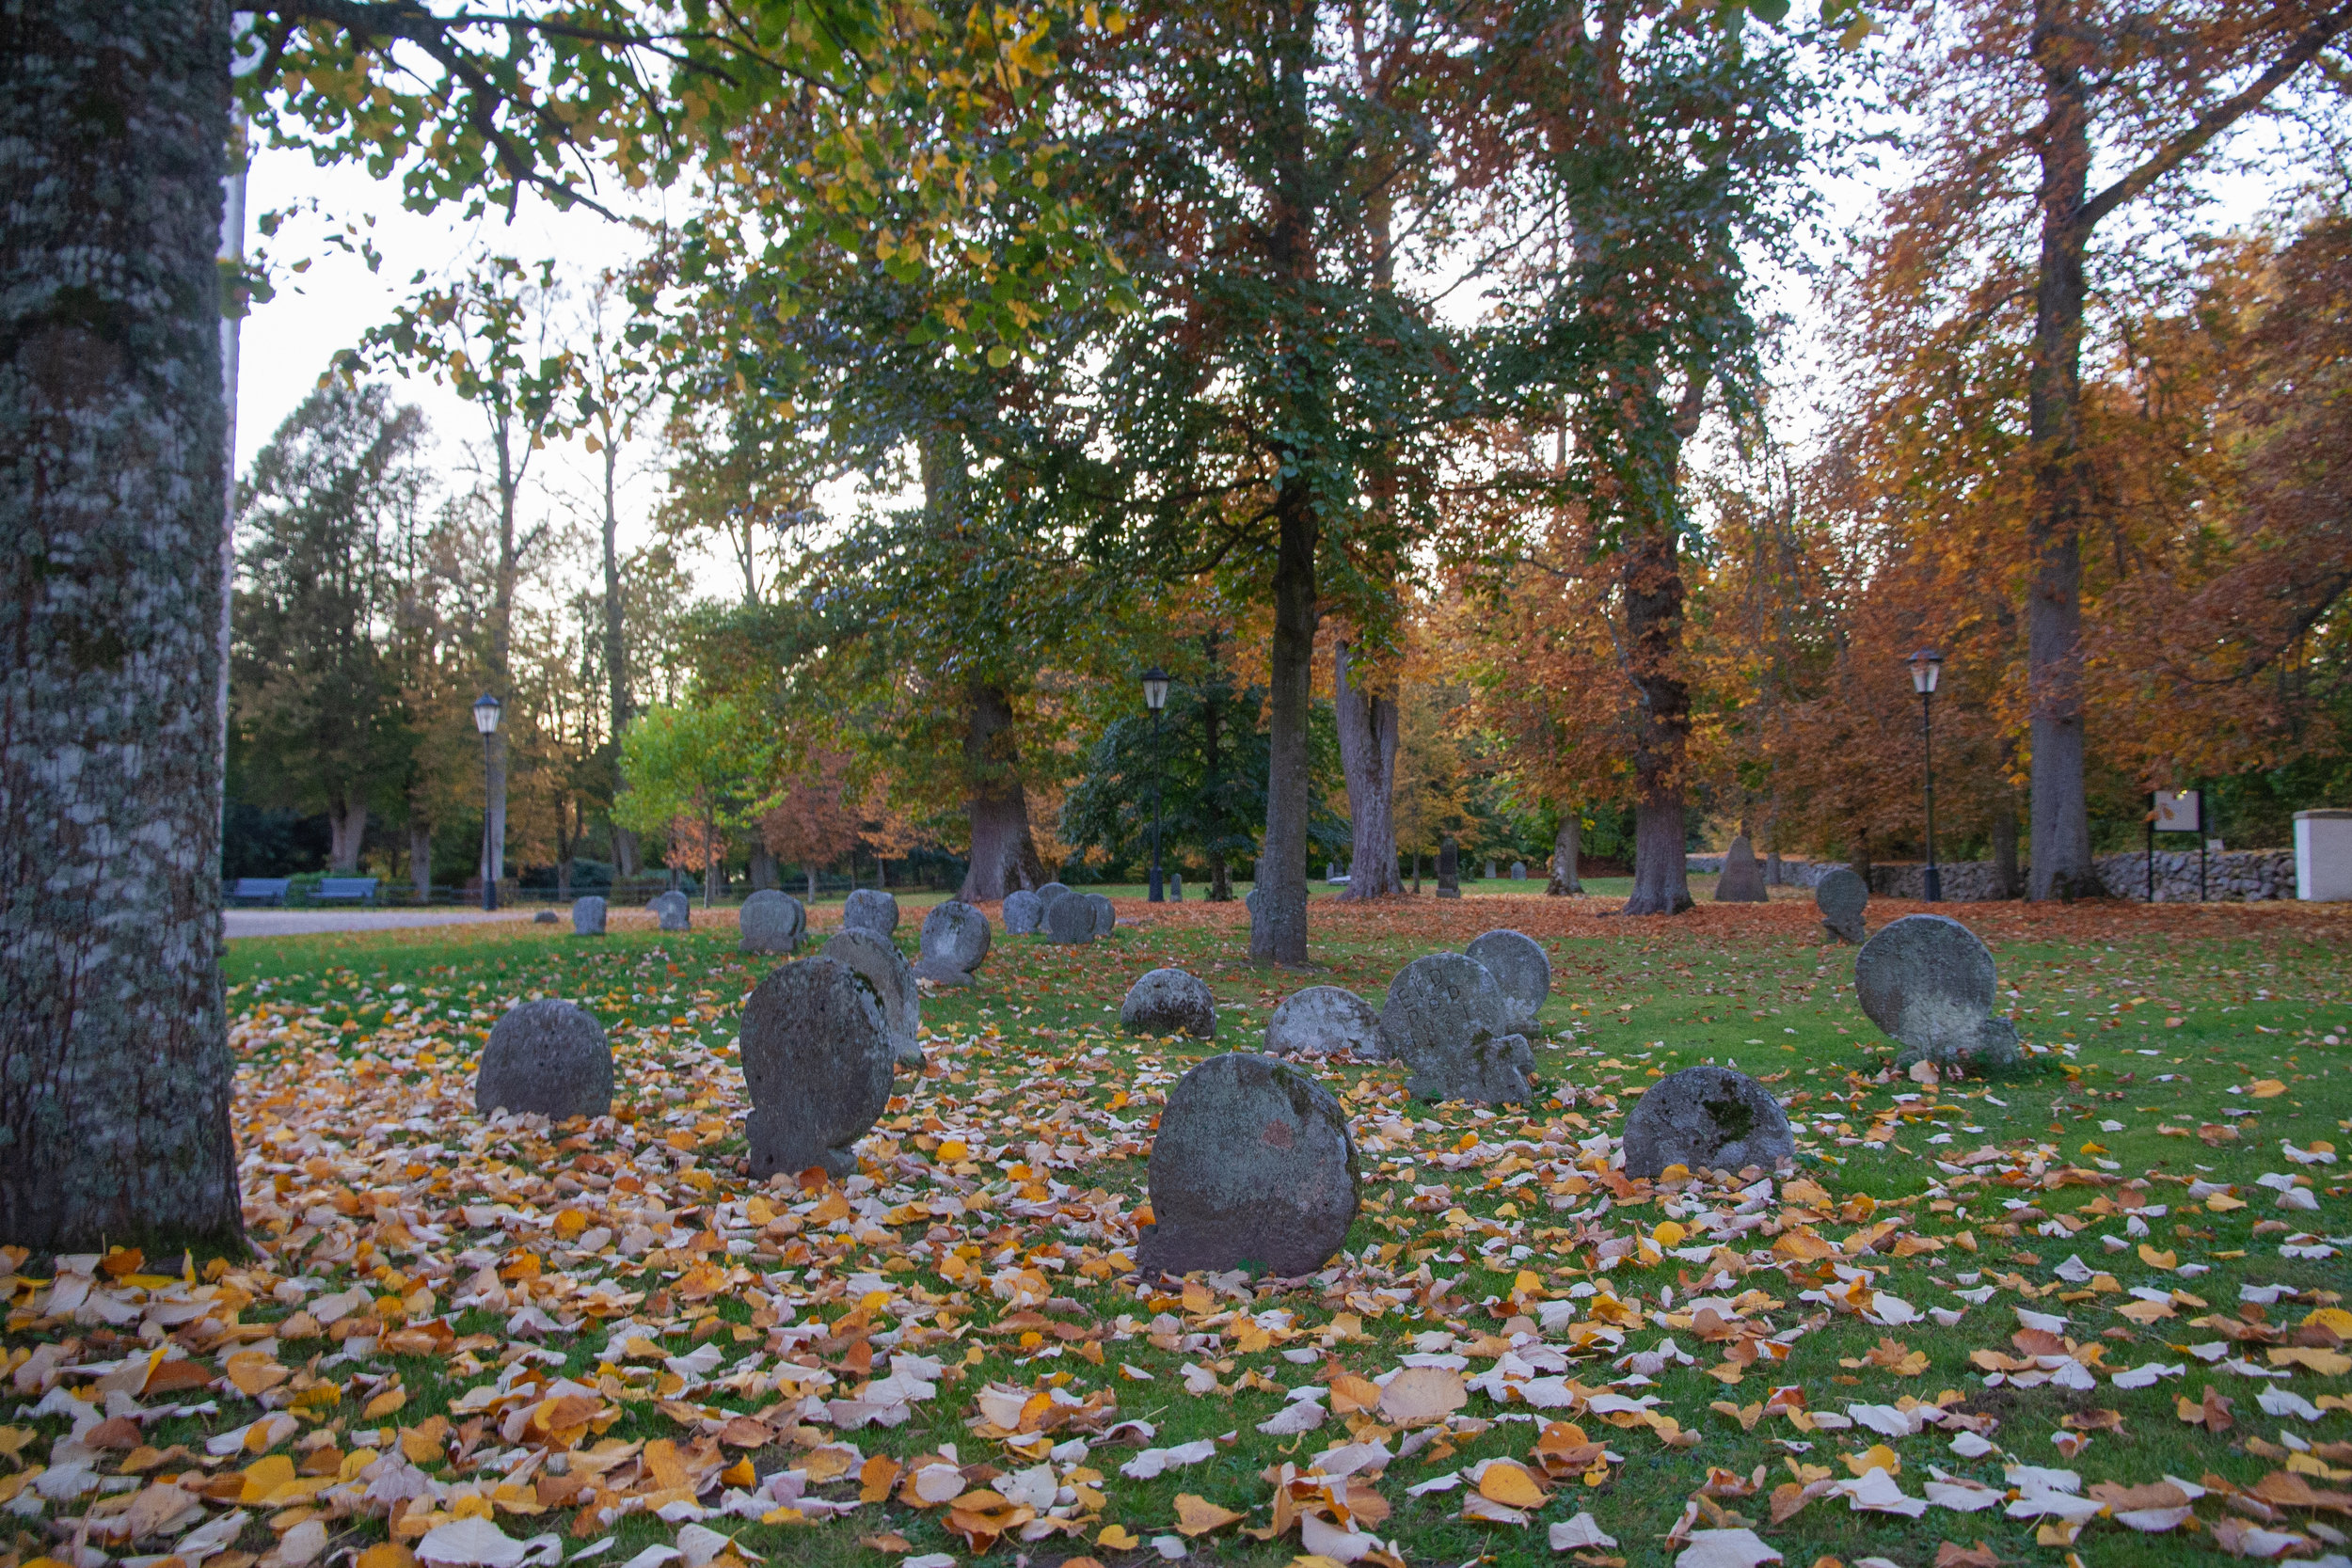 The nuns' graves north of the chapel